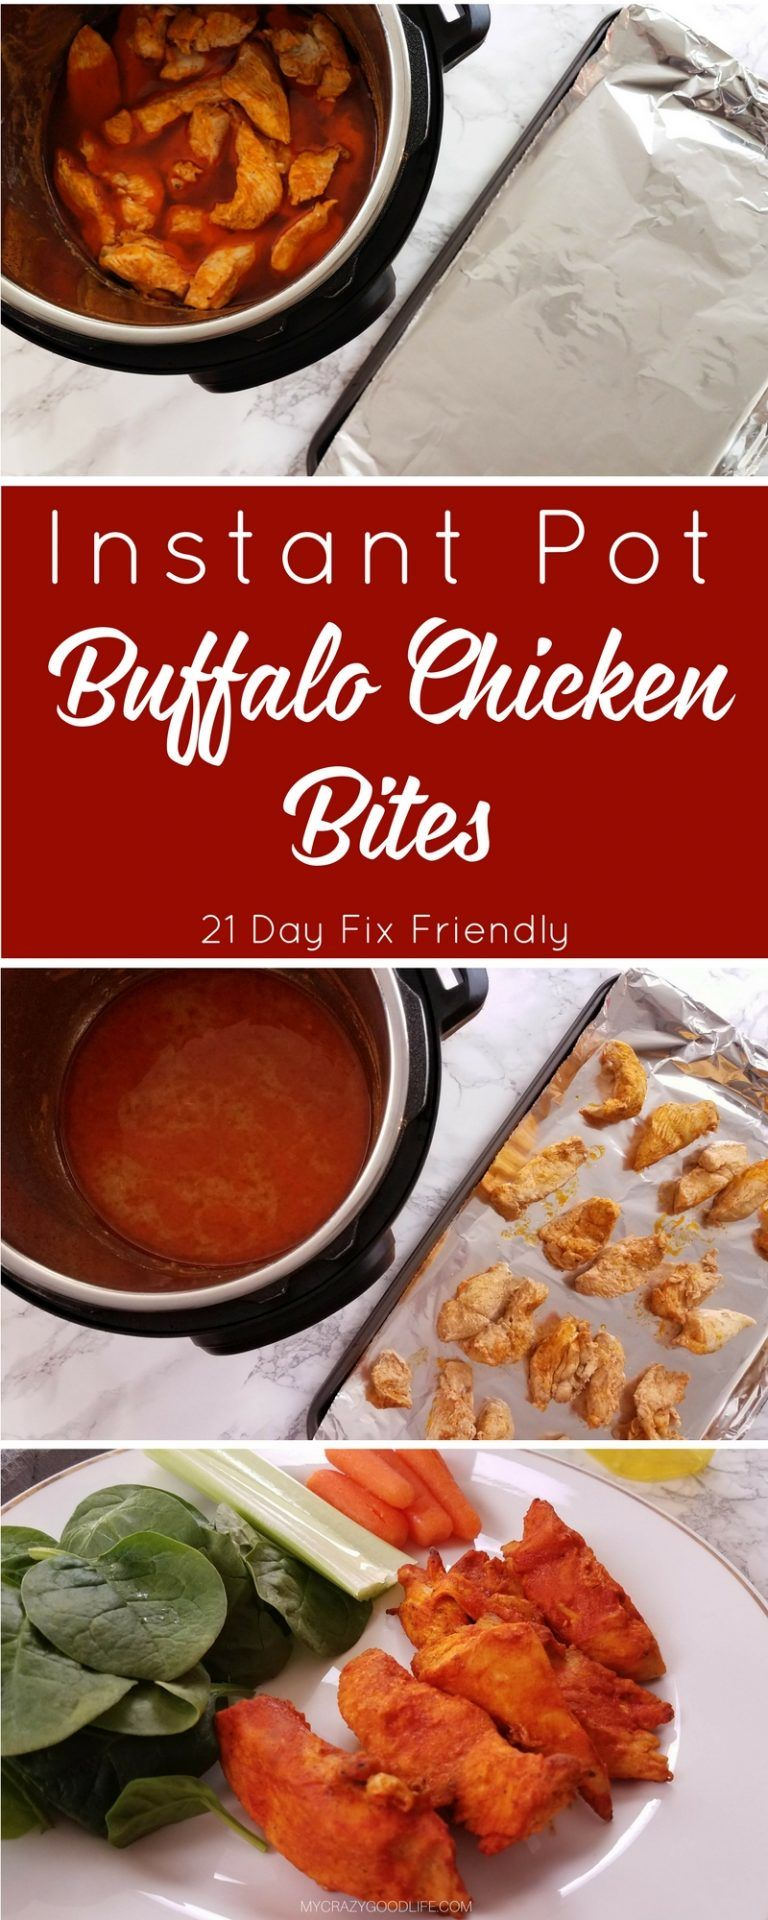 These 21 Day Fix Buffalo Chicken Bites will satisfy your craving! These Instant Pot Buffalo Chicken Bites can be made from fresh or frozen chicken. (21 Day Fix Recipes Snacks)